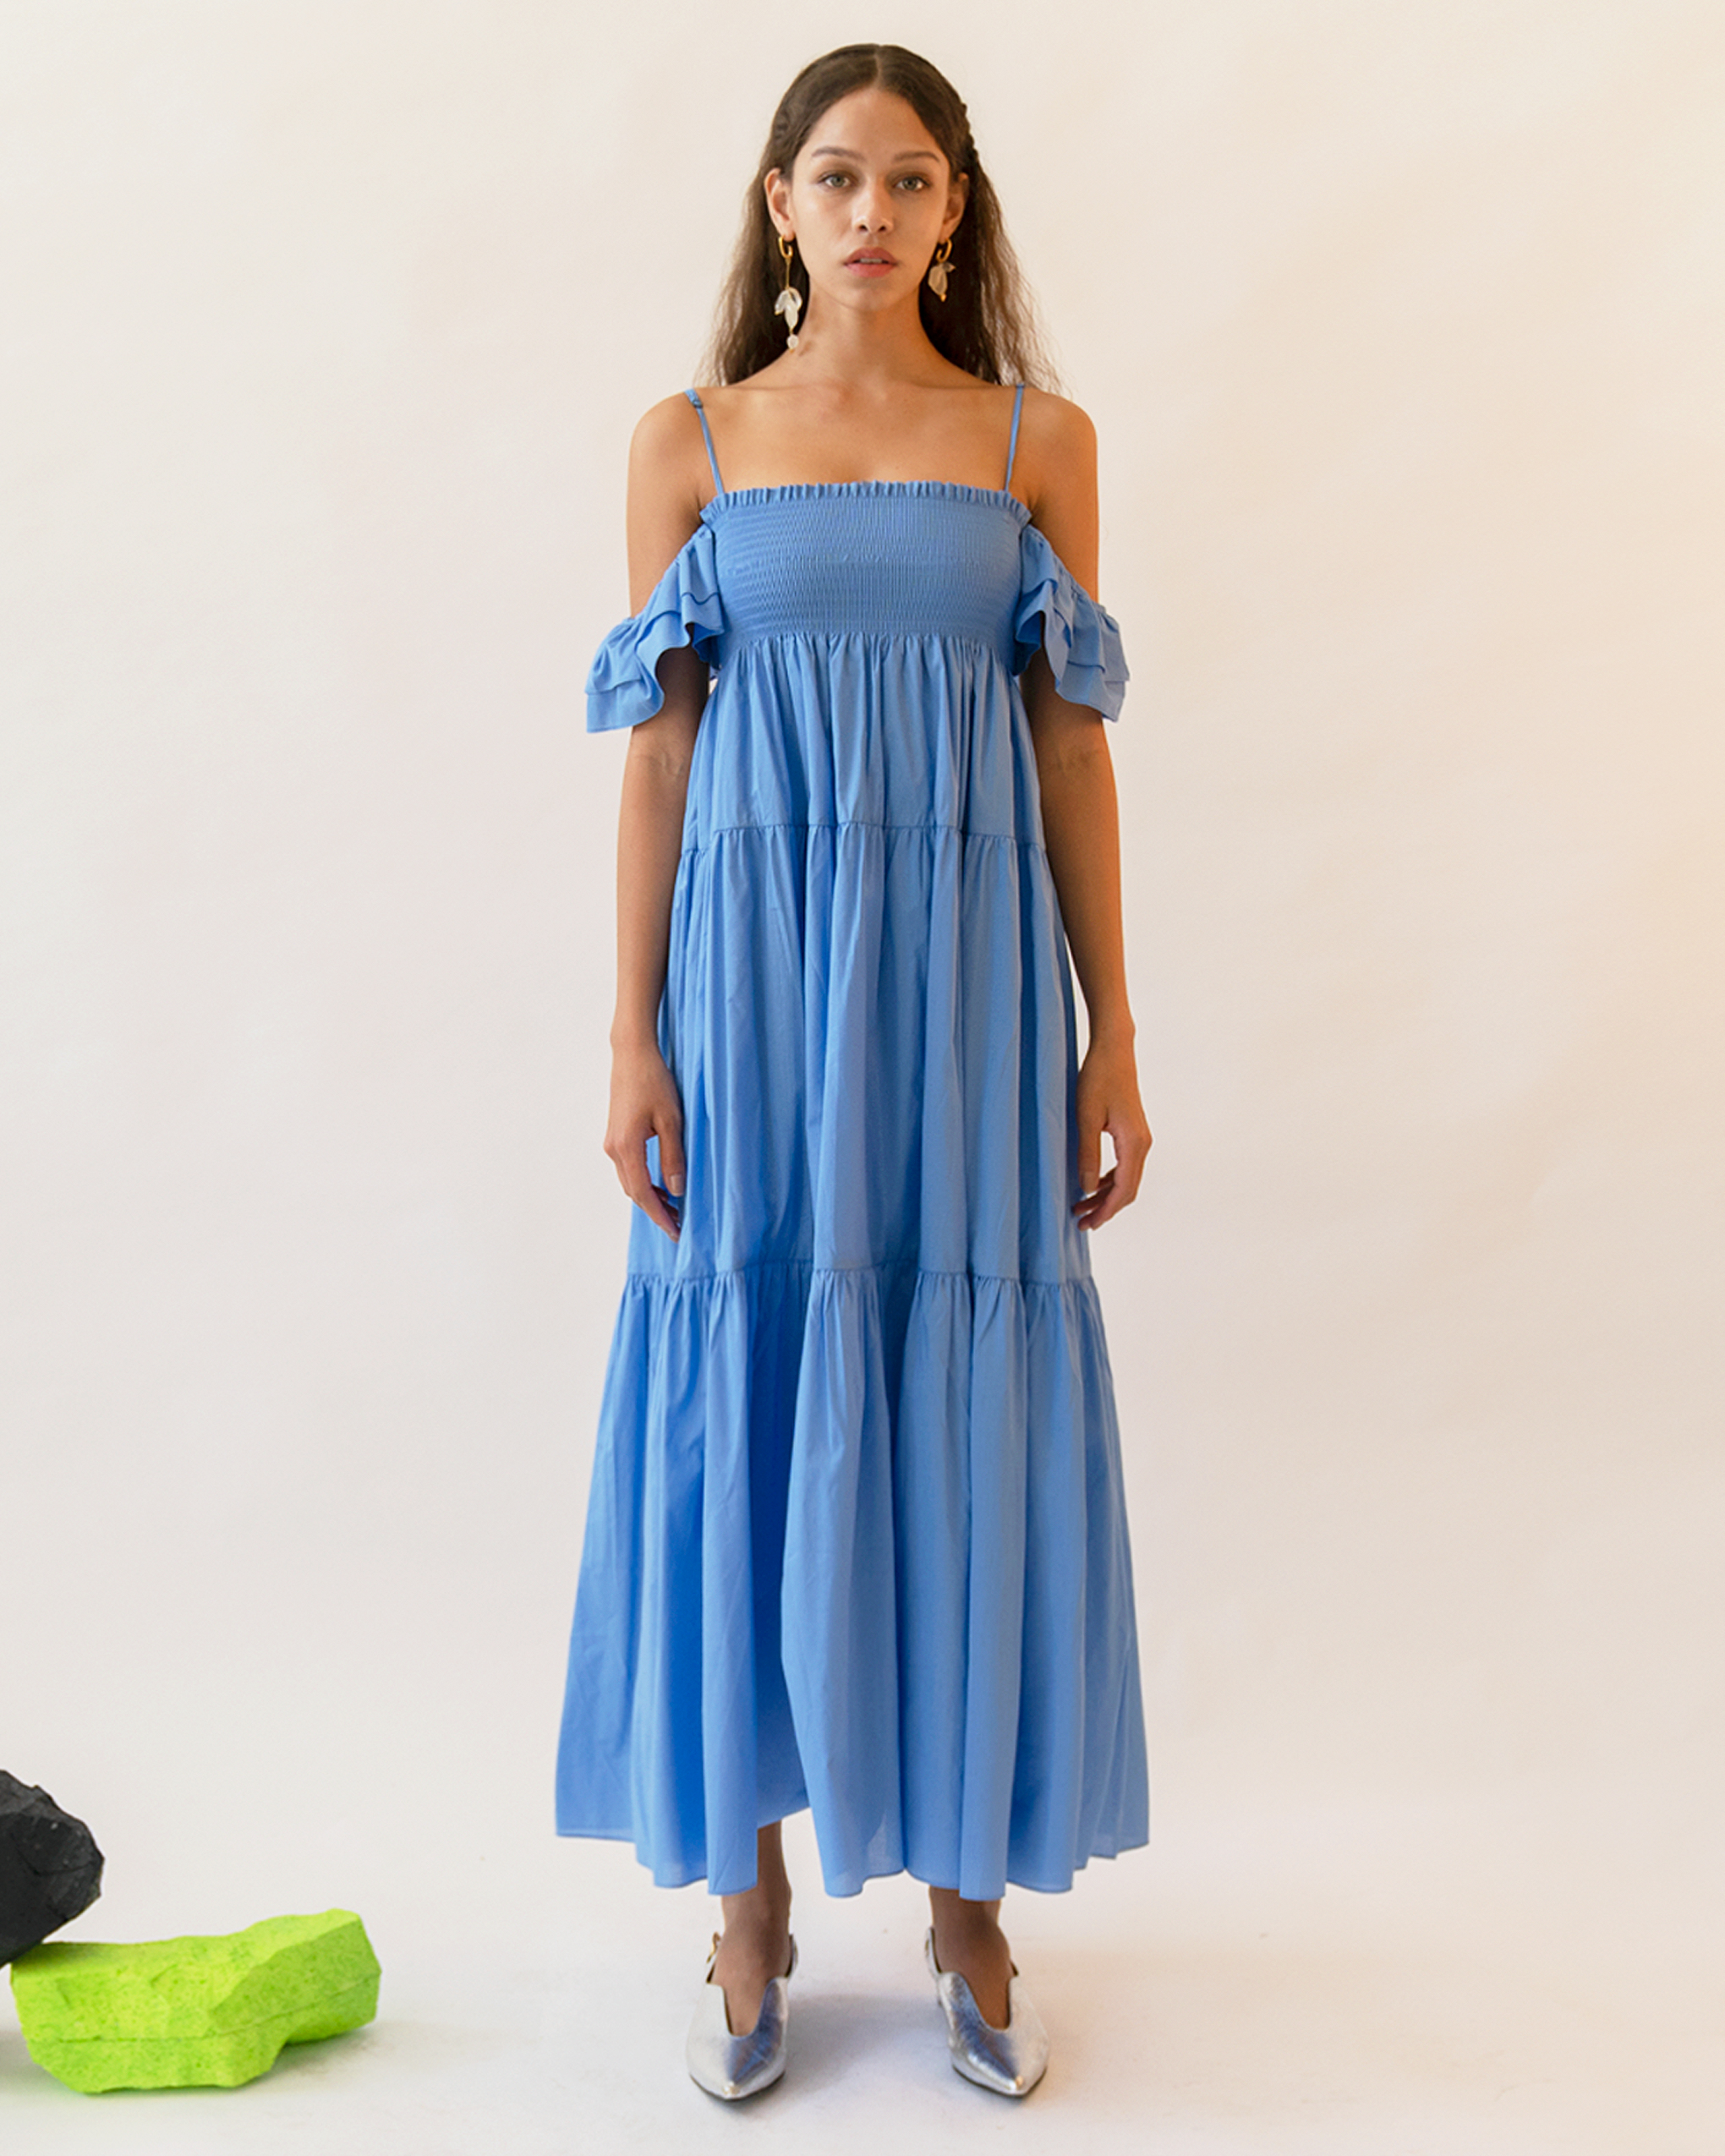 A woman is wearing a blue ruffle off-the-shoulder dress.